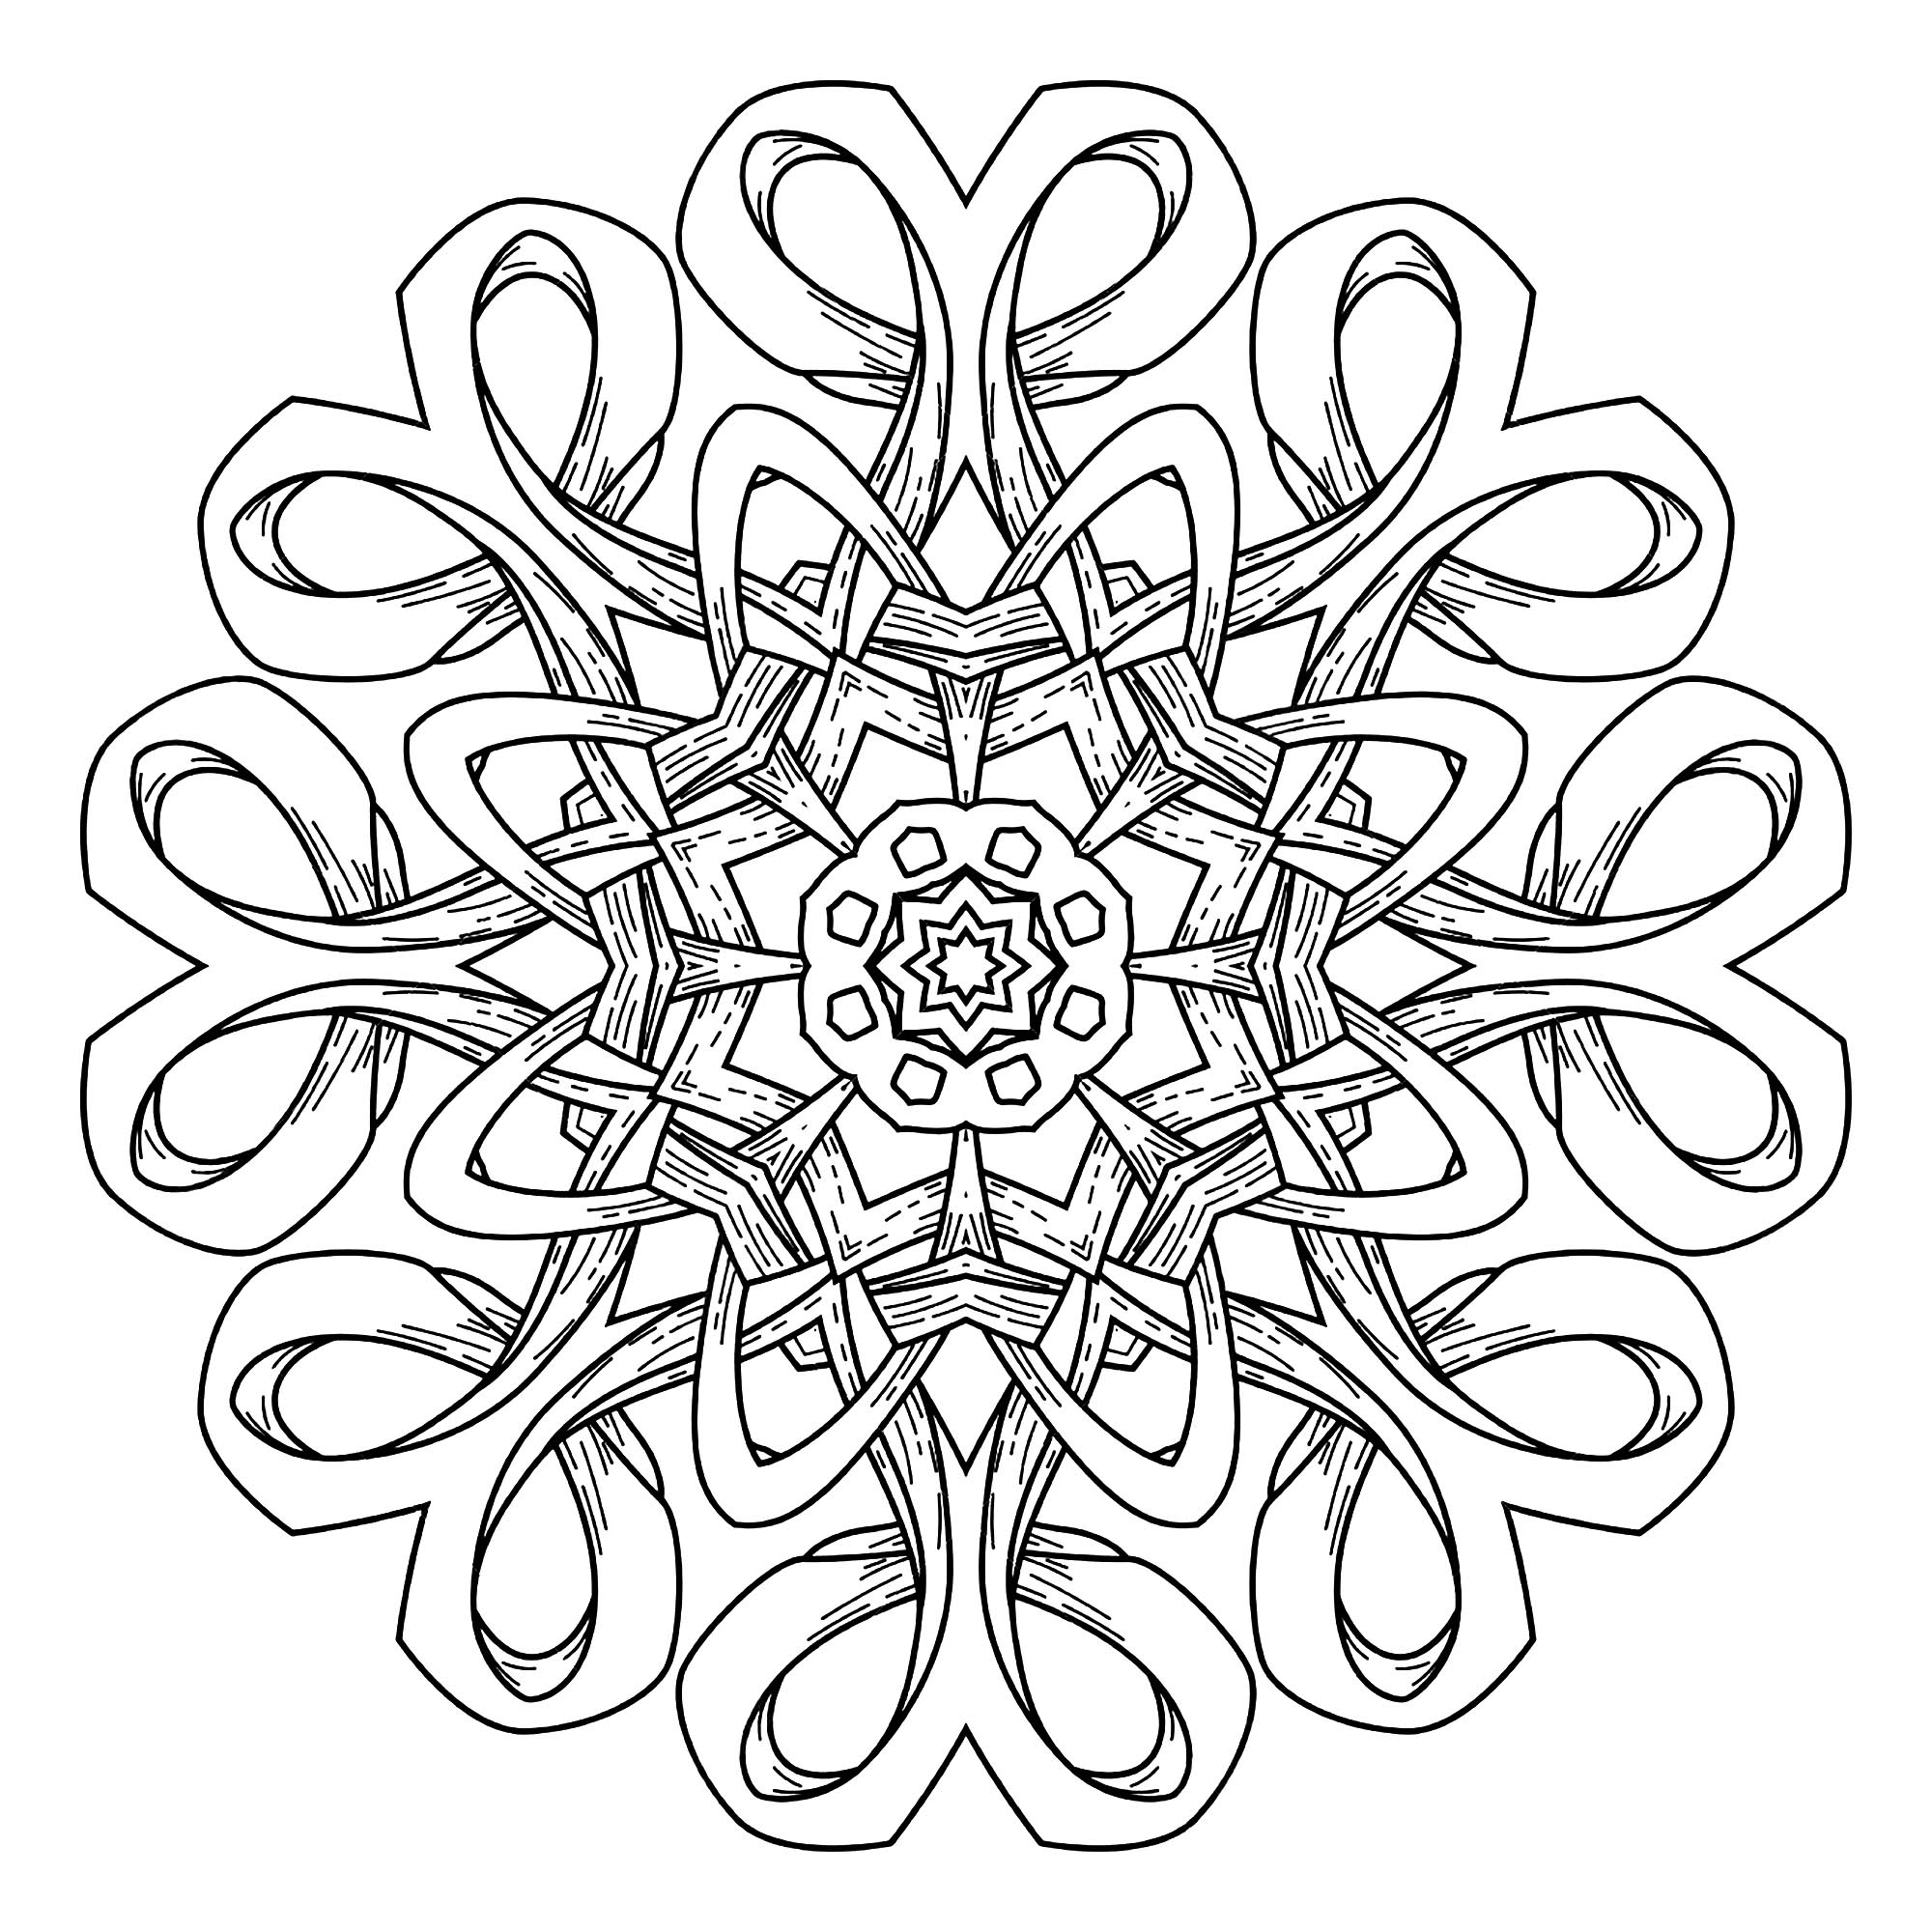 A Mandala out of the ordinary, which will allow you to spend a good time coloring, without complicating your life with too small areas, if it's not what you search for.